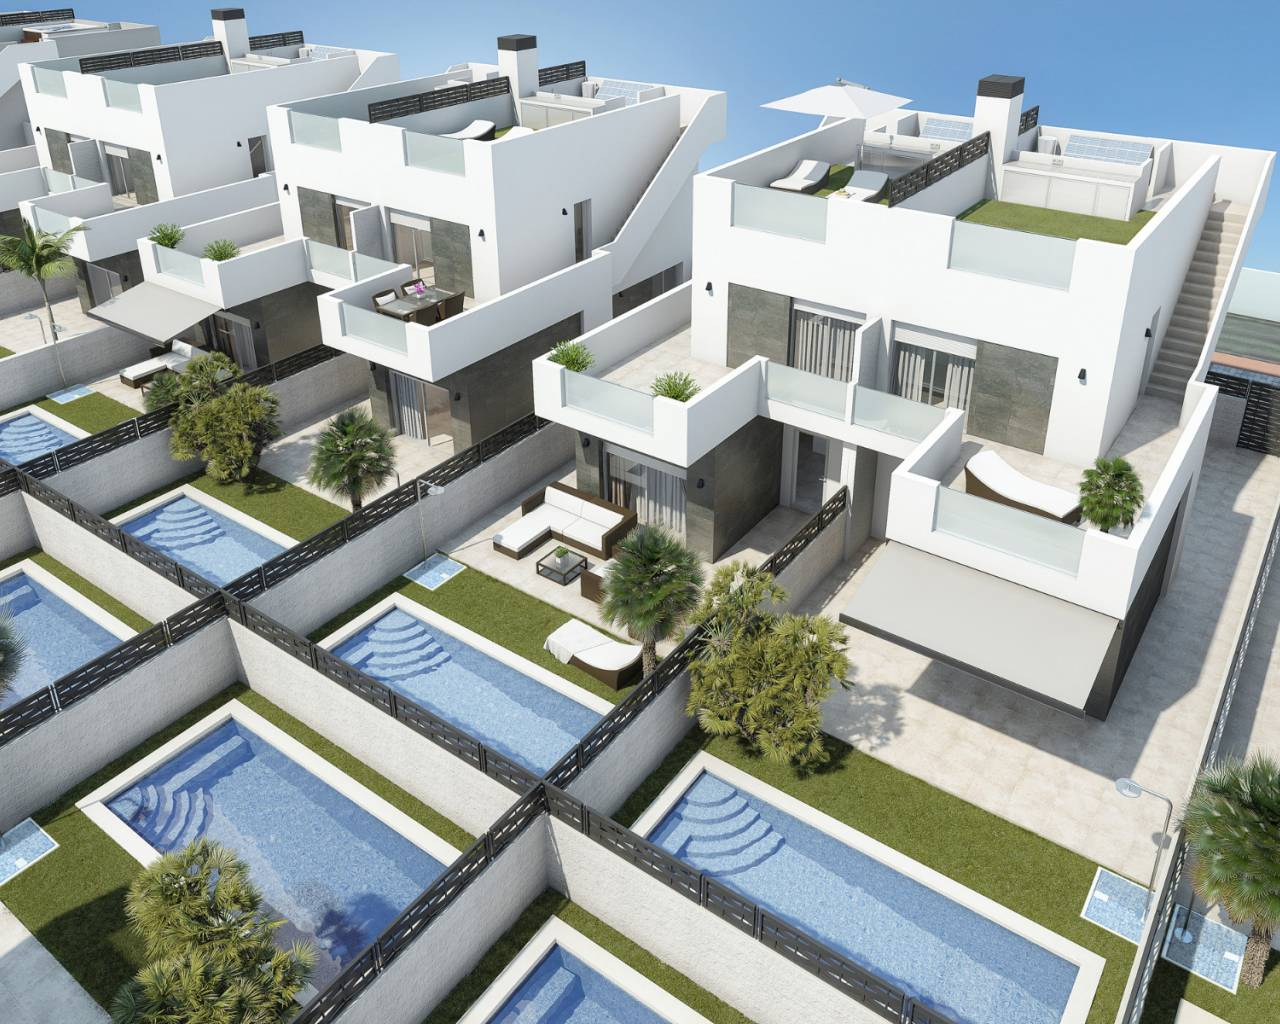 New build - Townhouse / Duplex - Rojales - Ciudad Quesada